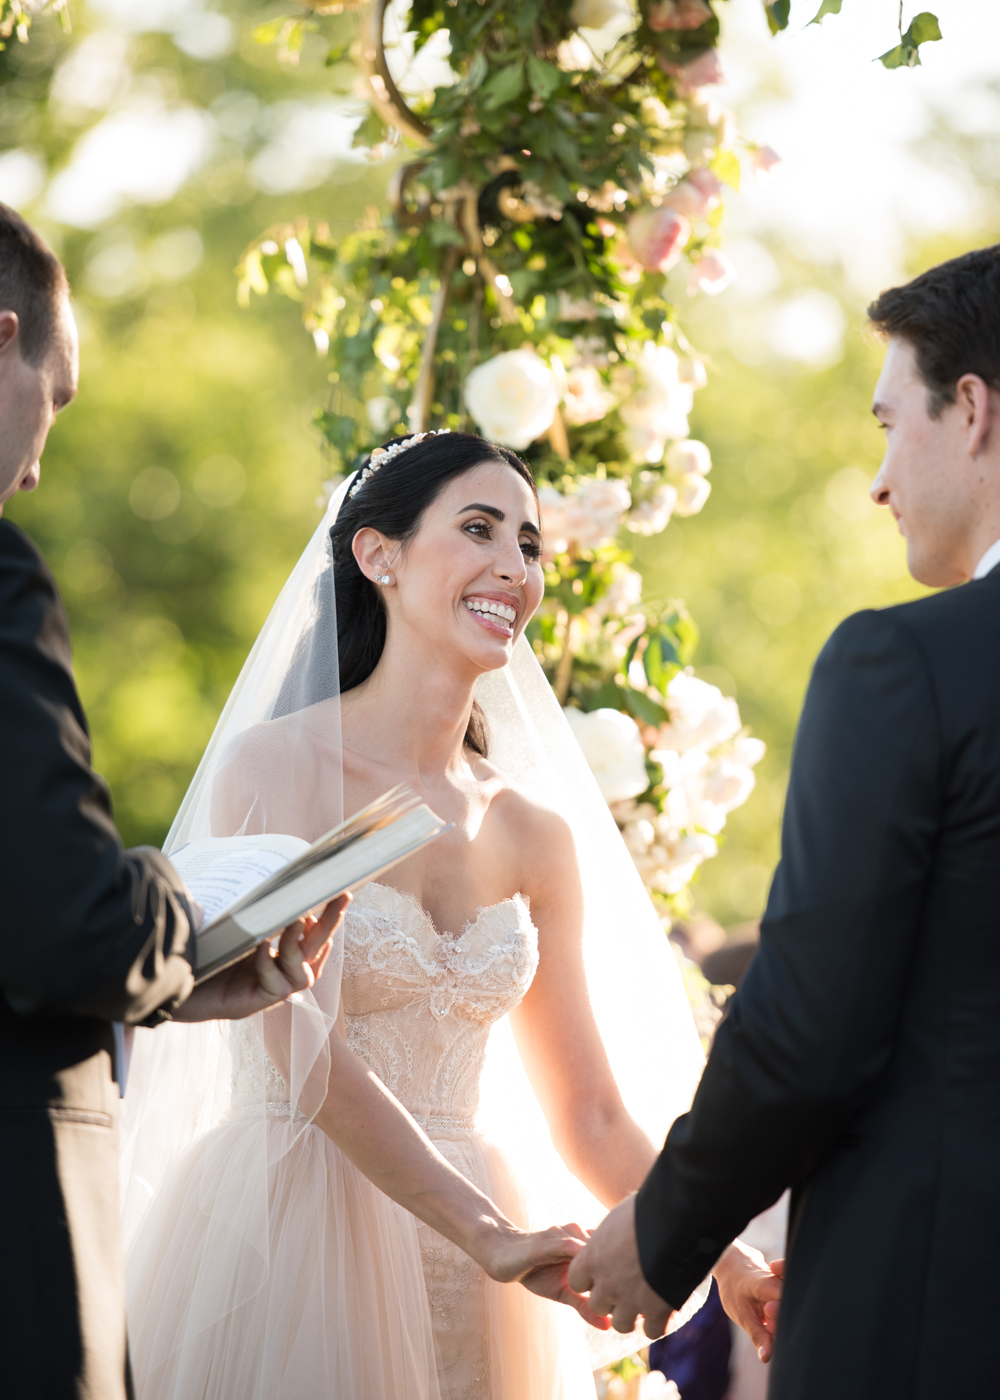 best vows from tv shows, wedding vows for cory and topanga boy meets world, turk and carla scrubs, leslie and ben parks & rec, 90210, fraiser